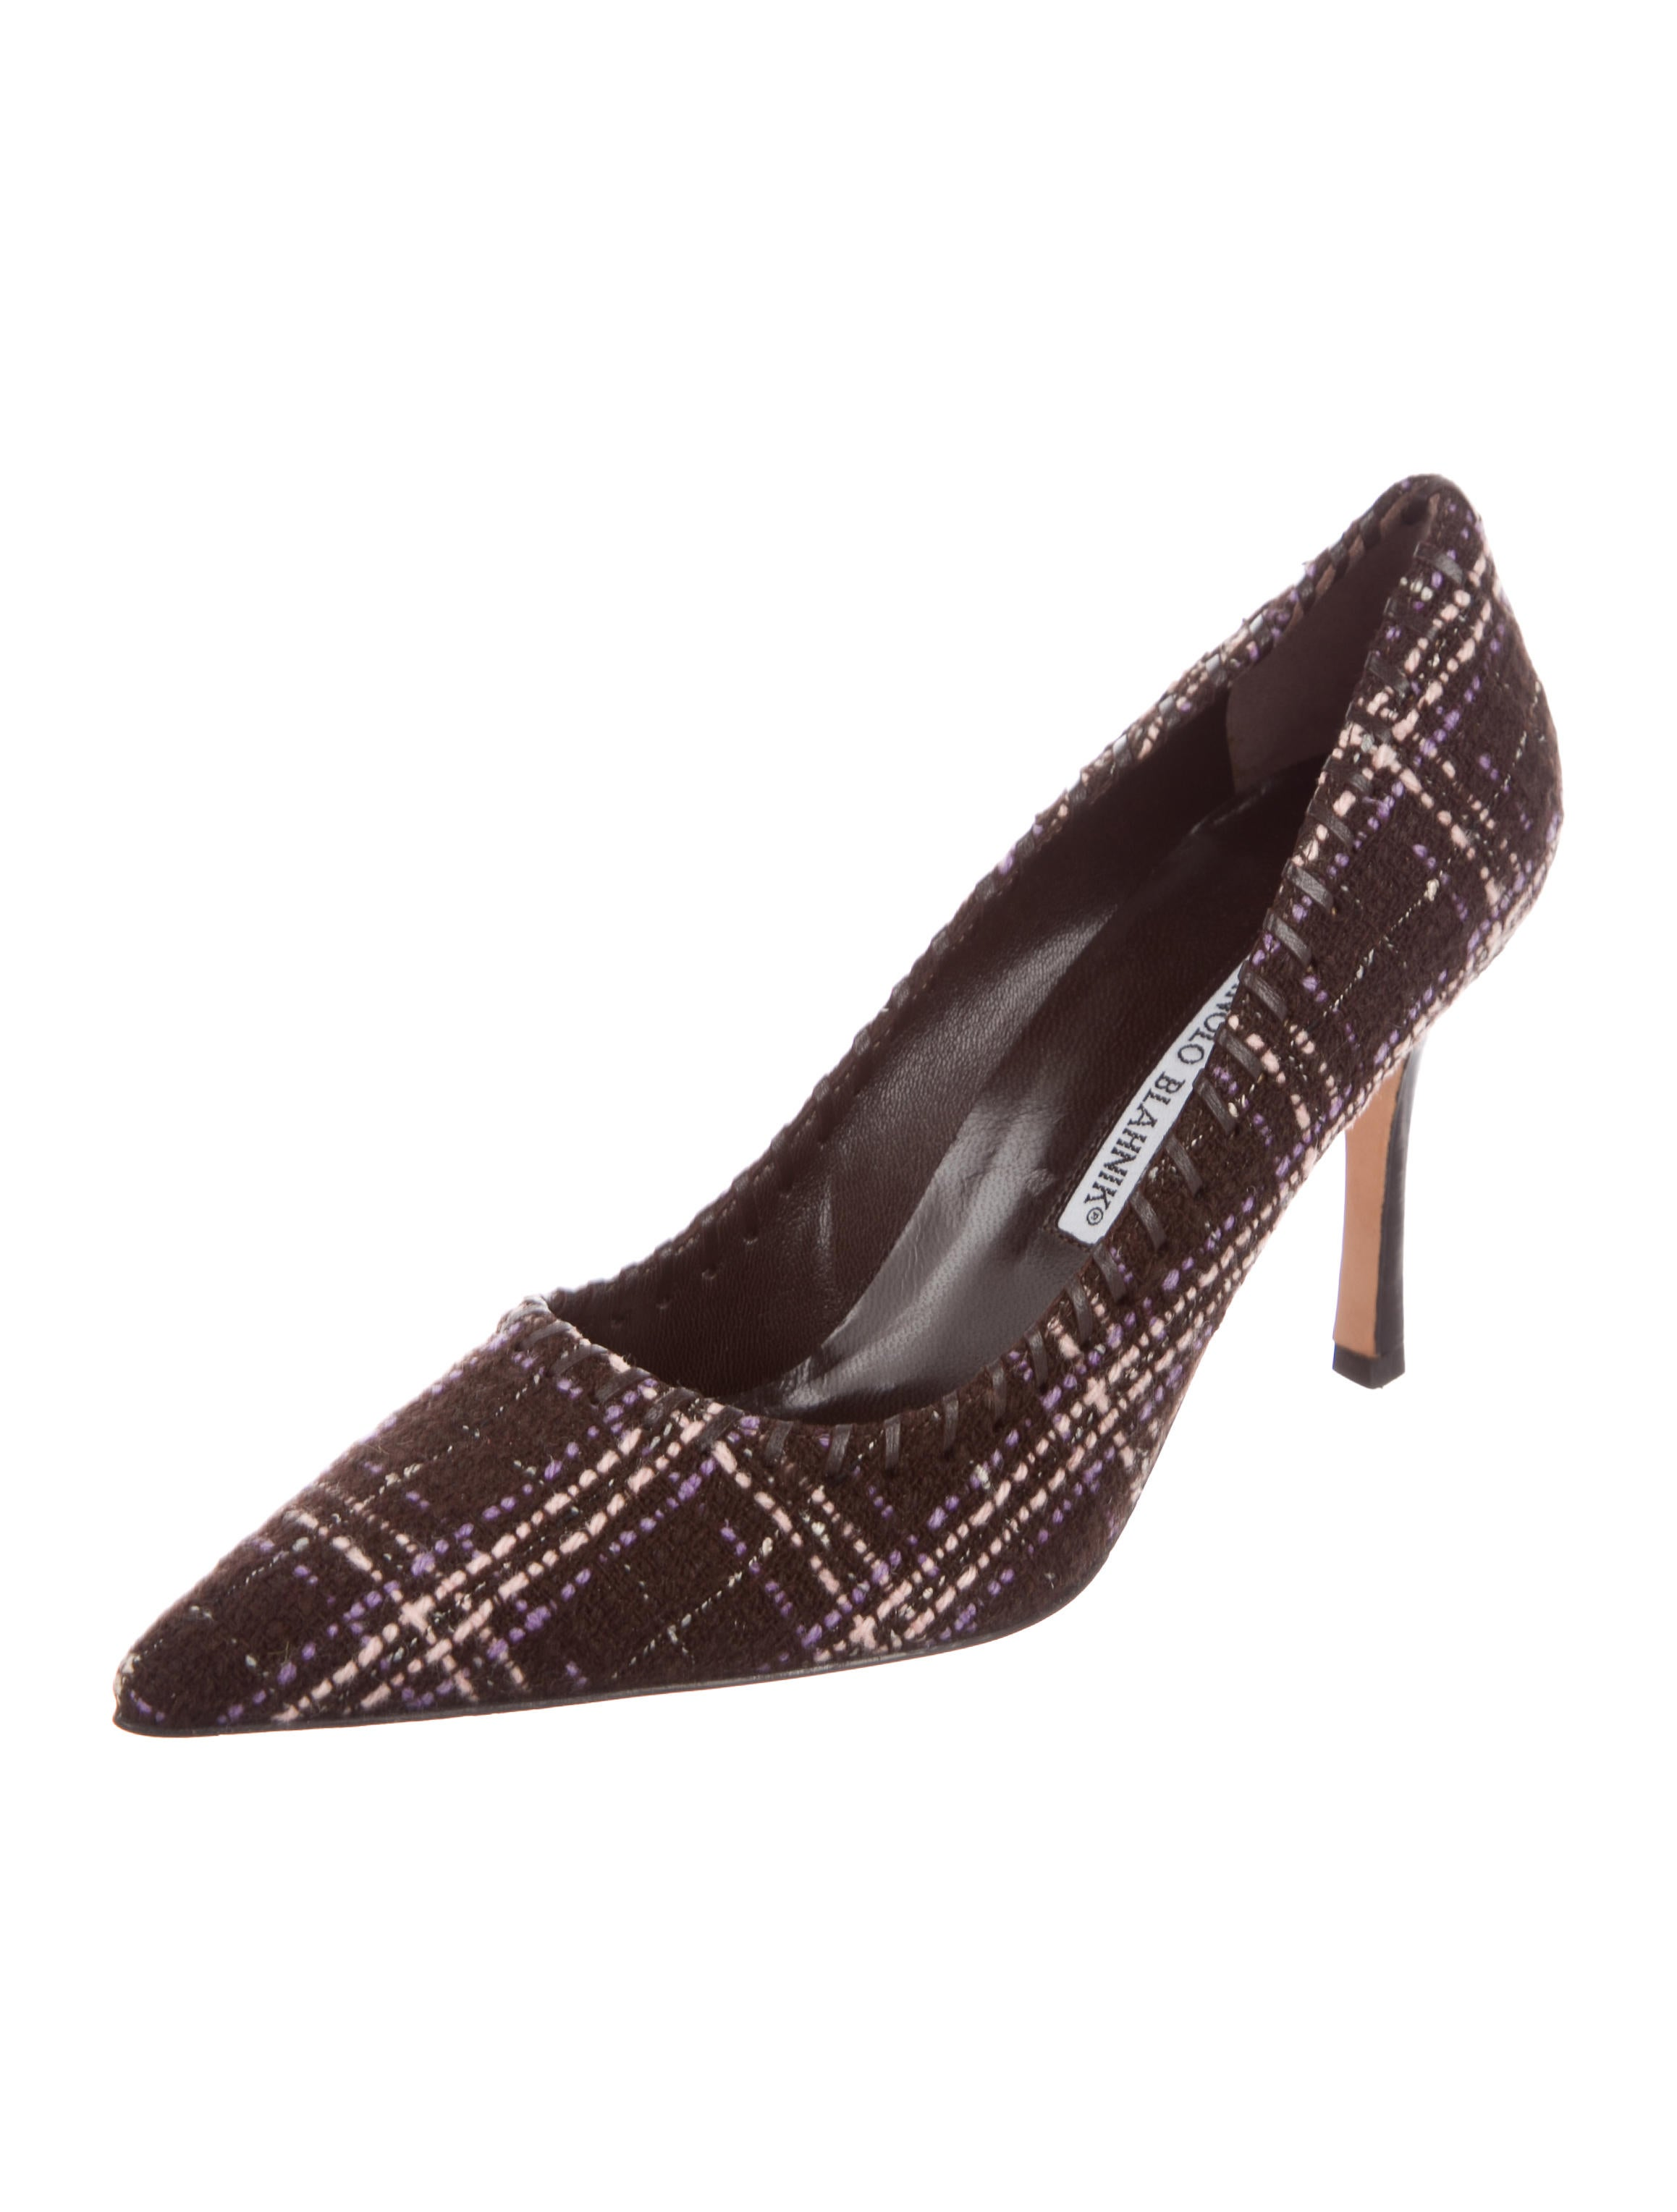 Manolo Blahnik Tweed Pointed-Toe Pumps w/ Tags free shipping for sale buy cheap recommend 65RyS0zg